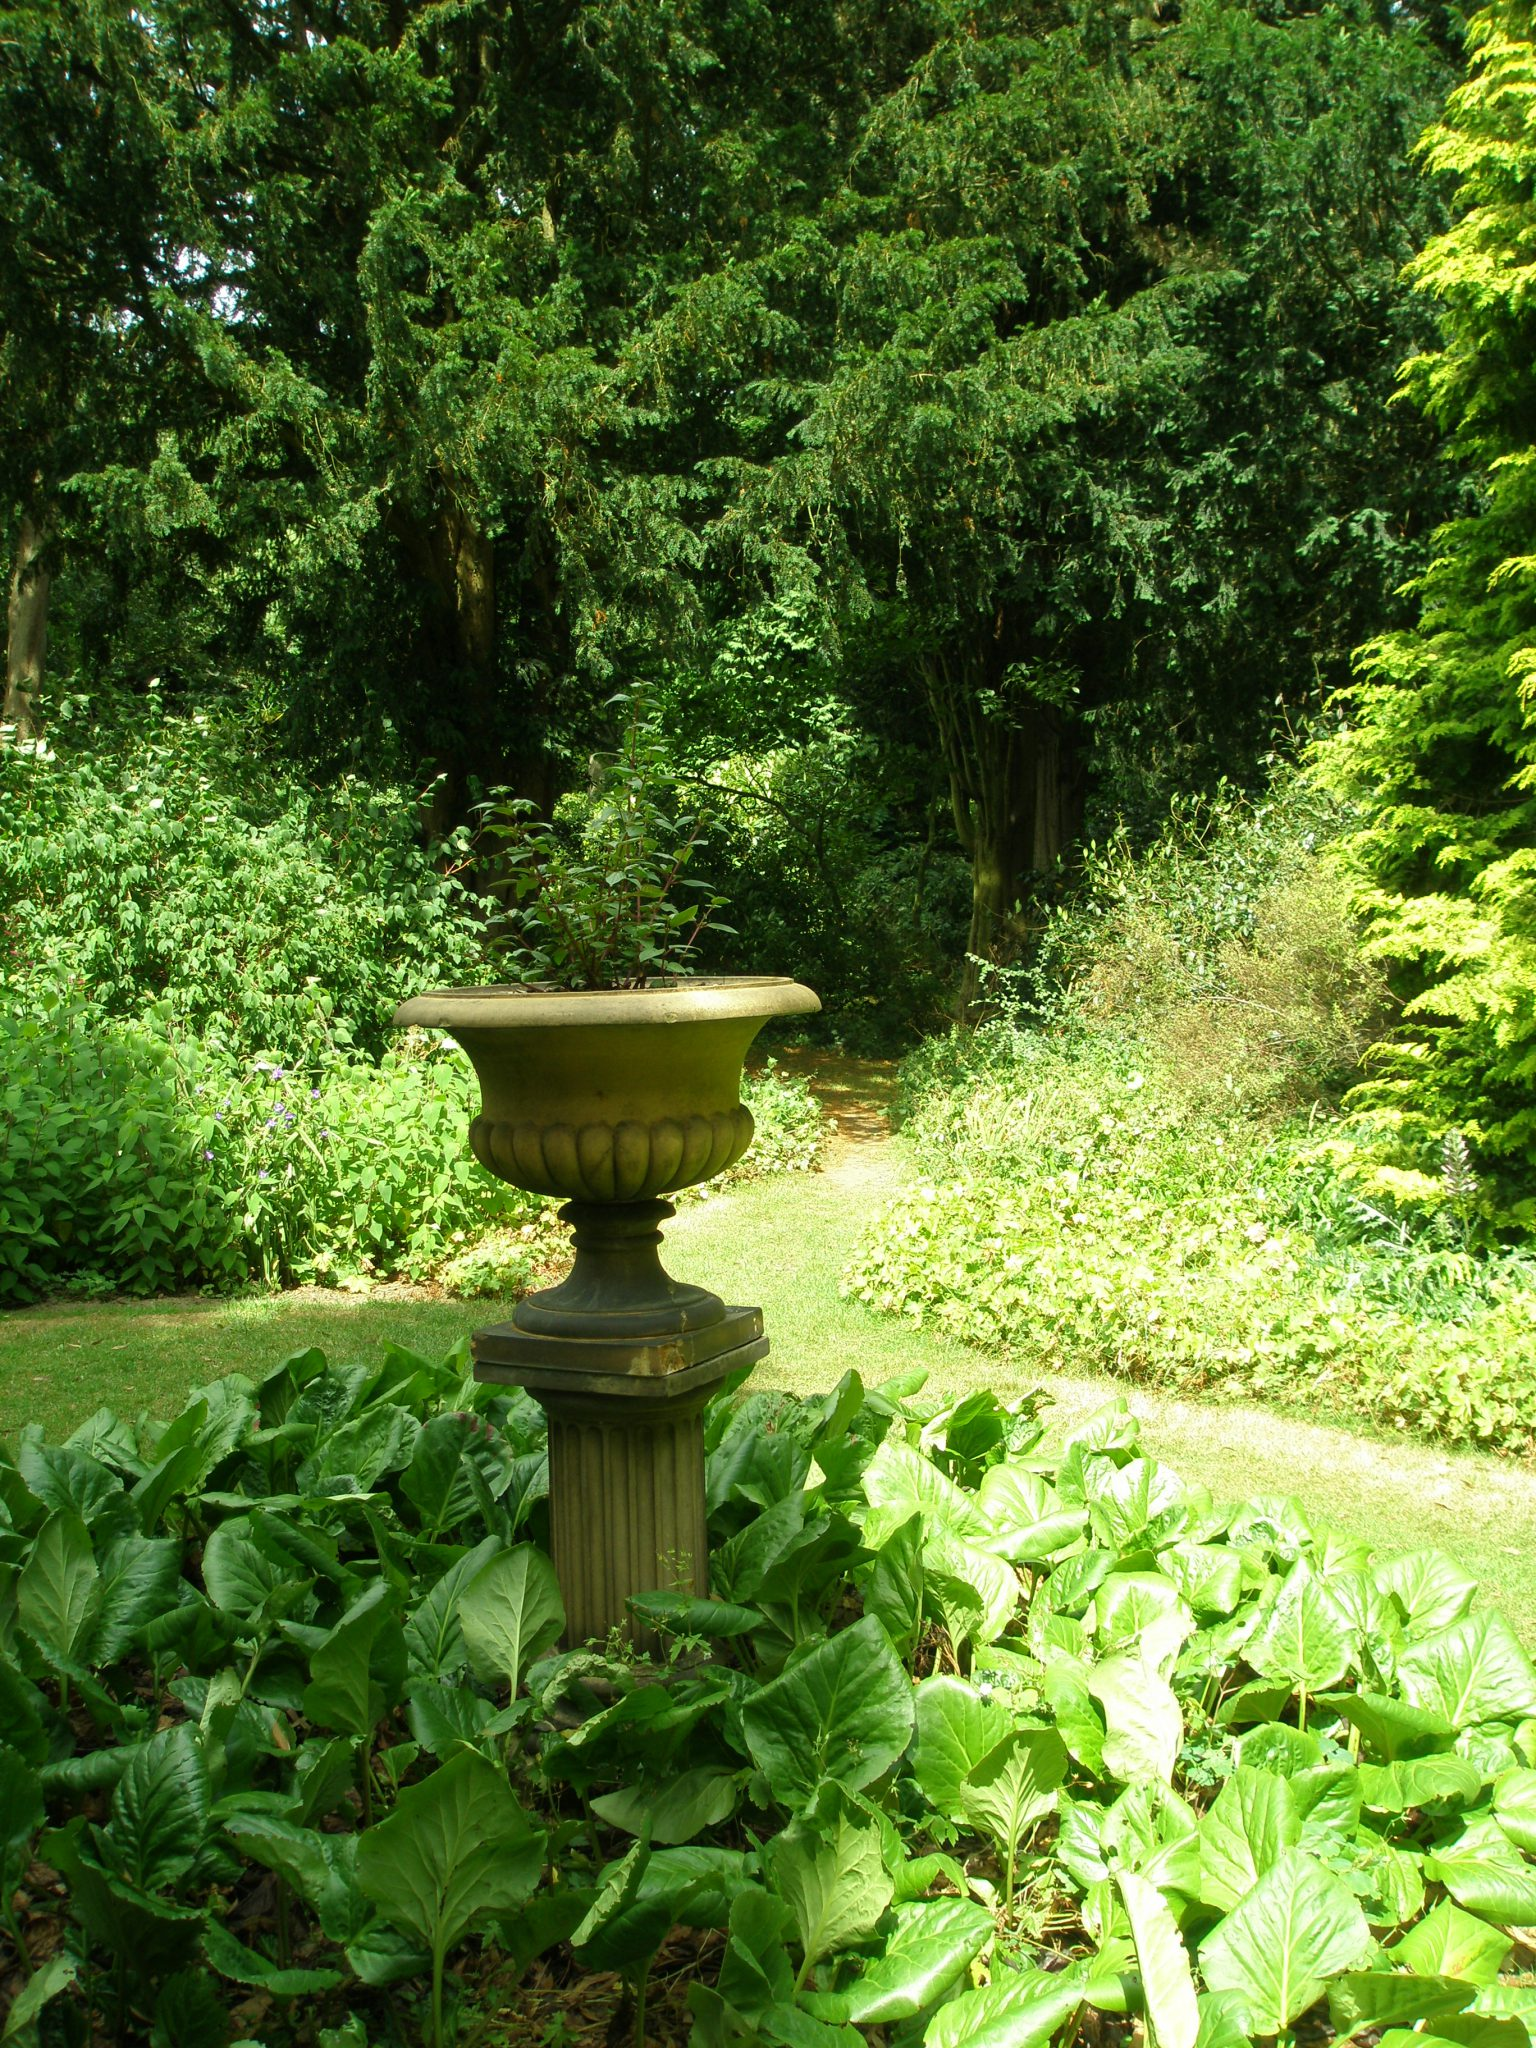 Woodland paths radiate from behind the Doulton Urn, which was the first garden ornament that Joy Cameron bought. The yew tree (Taxus baccata) on the right is over 150 years old.